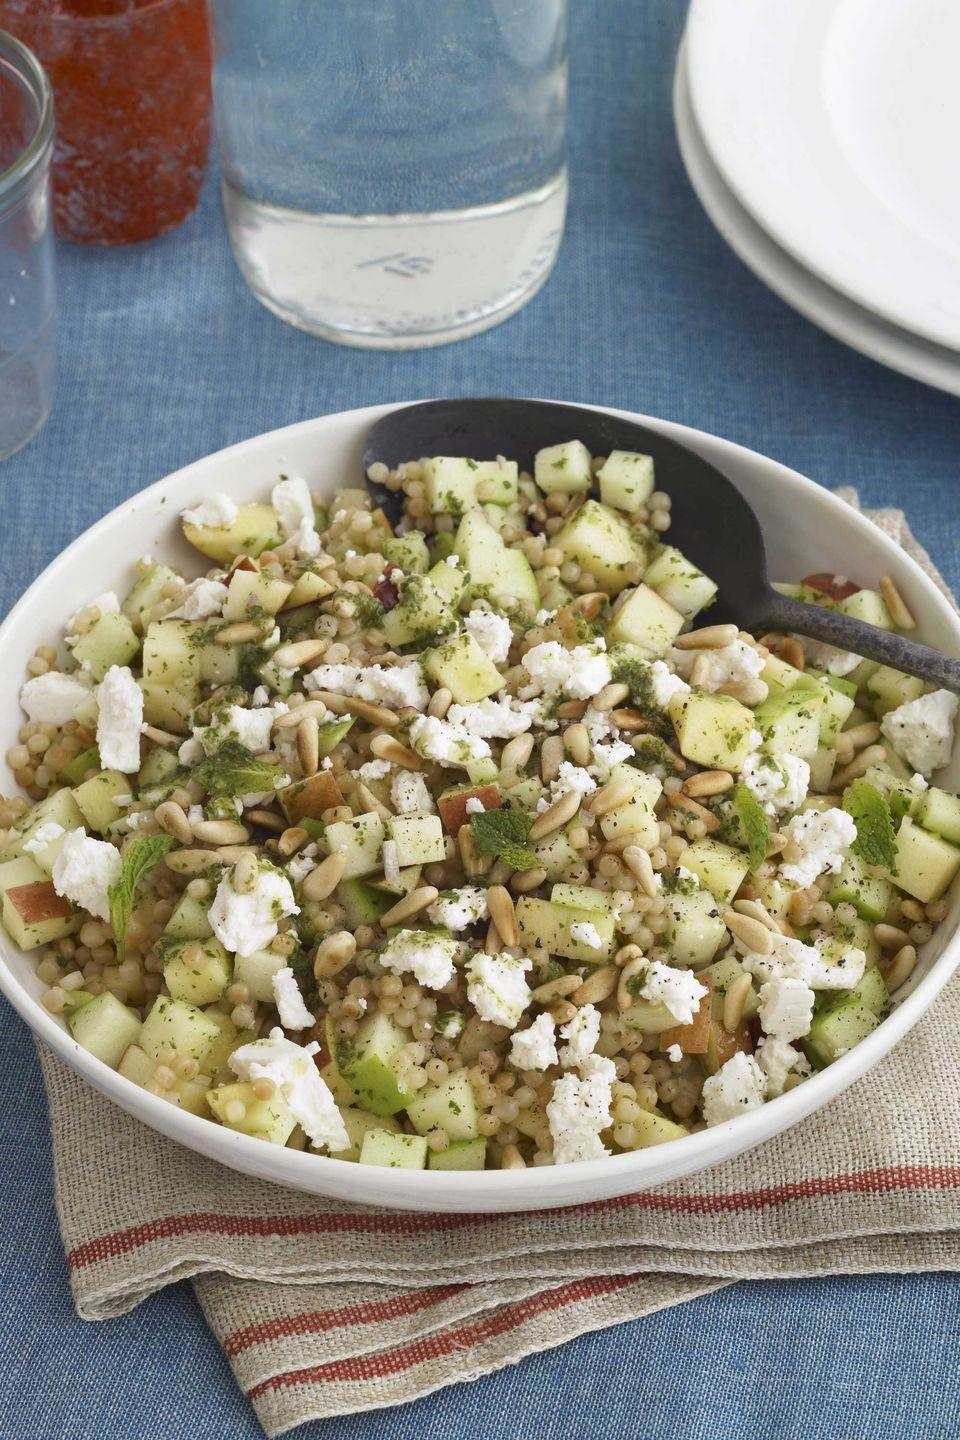 "<p>A minty lemon dressing brightens an Israeli couscous salad made with crumbled feta, toasted pine nuts, and crunchy Galas and Calville Blanc d'Hiver apples.</p><p><strong><a href=""https://www.countryliving.com/food-drinks/recipes/a3443/israeli-couscous-apple-salad-recipe-clv0910/"" rel=""nofollow noopener"" target=""_blank"" data-ylk=""slk:Get the recipe"" class=""link rapid-noclick-resp"">Get the recipe</a>.</strong></p>"